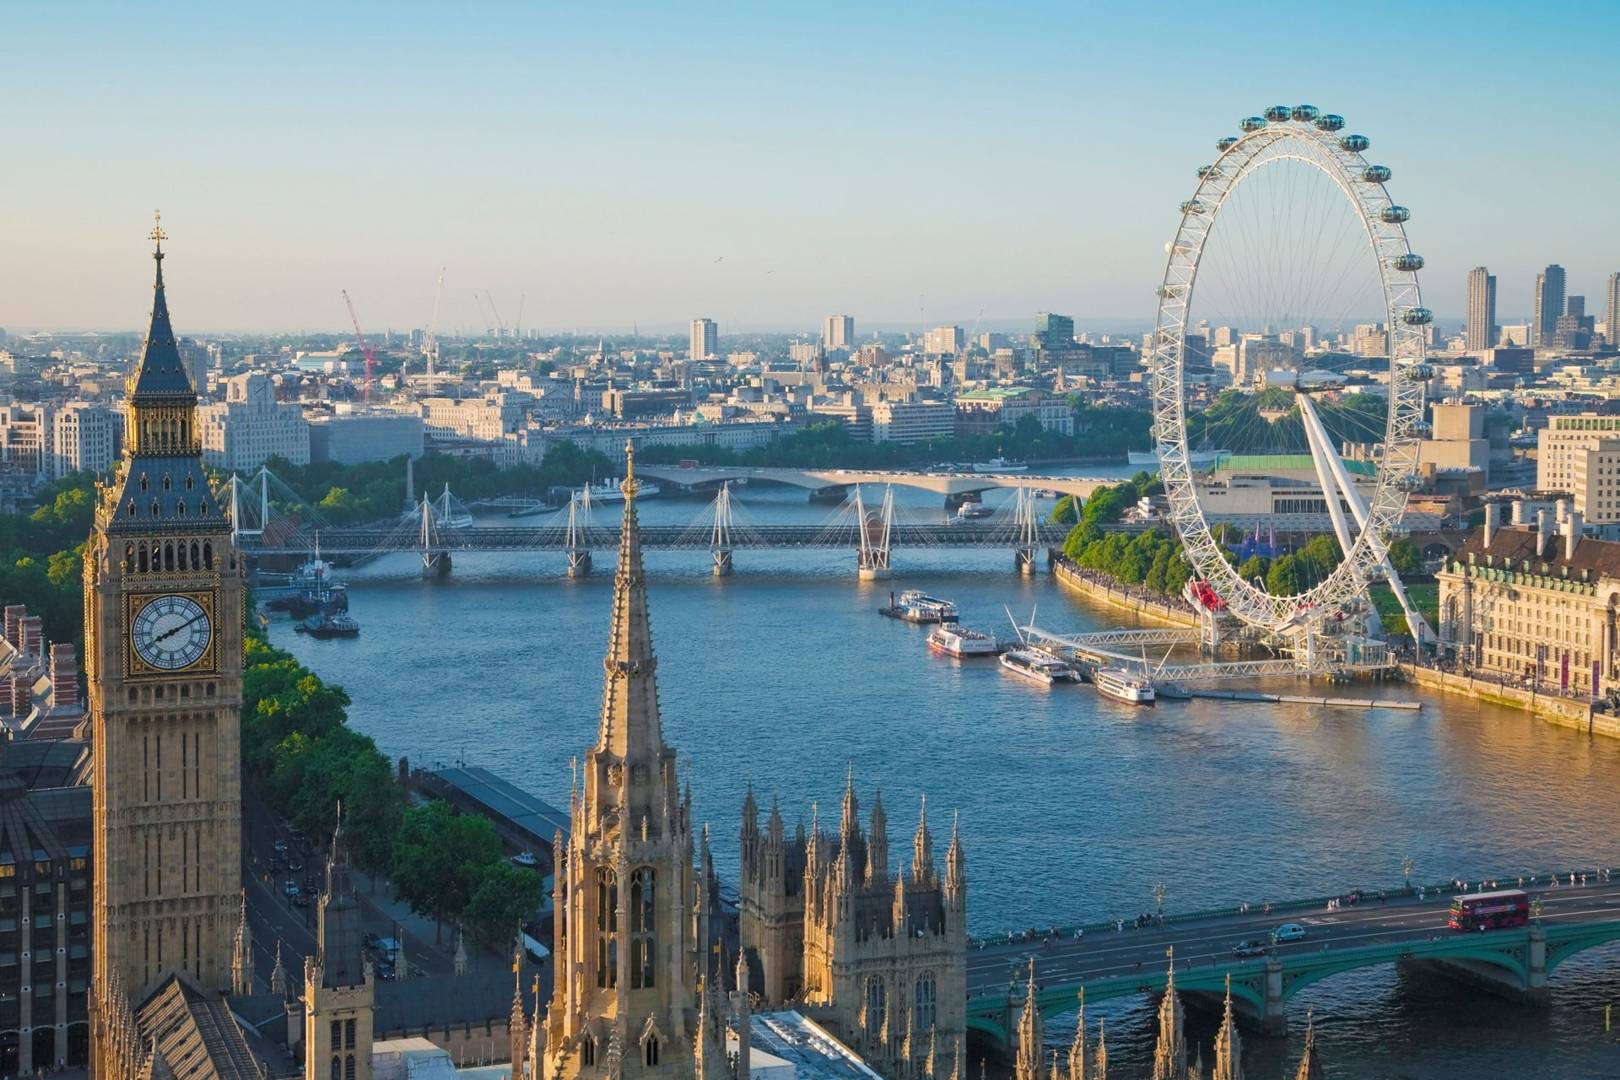 view-of-river-thames-big-ben-london-eye-london-conde-nast-traveller-29oct14-alamy.jpg